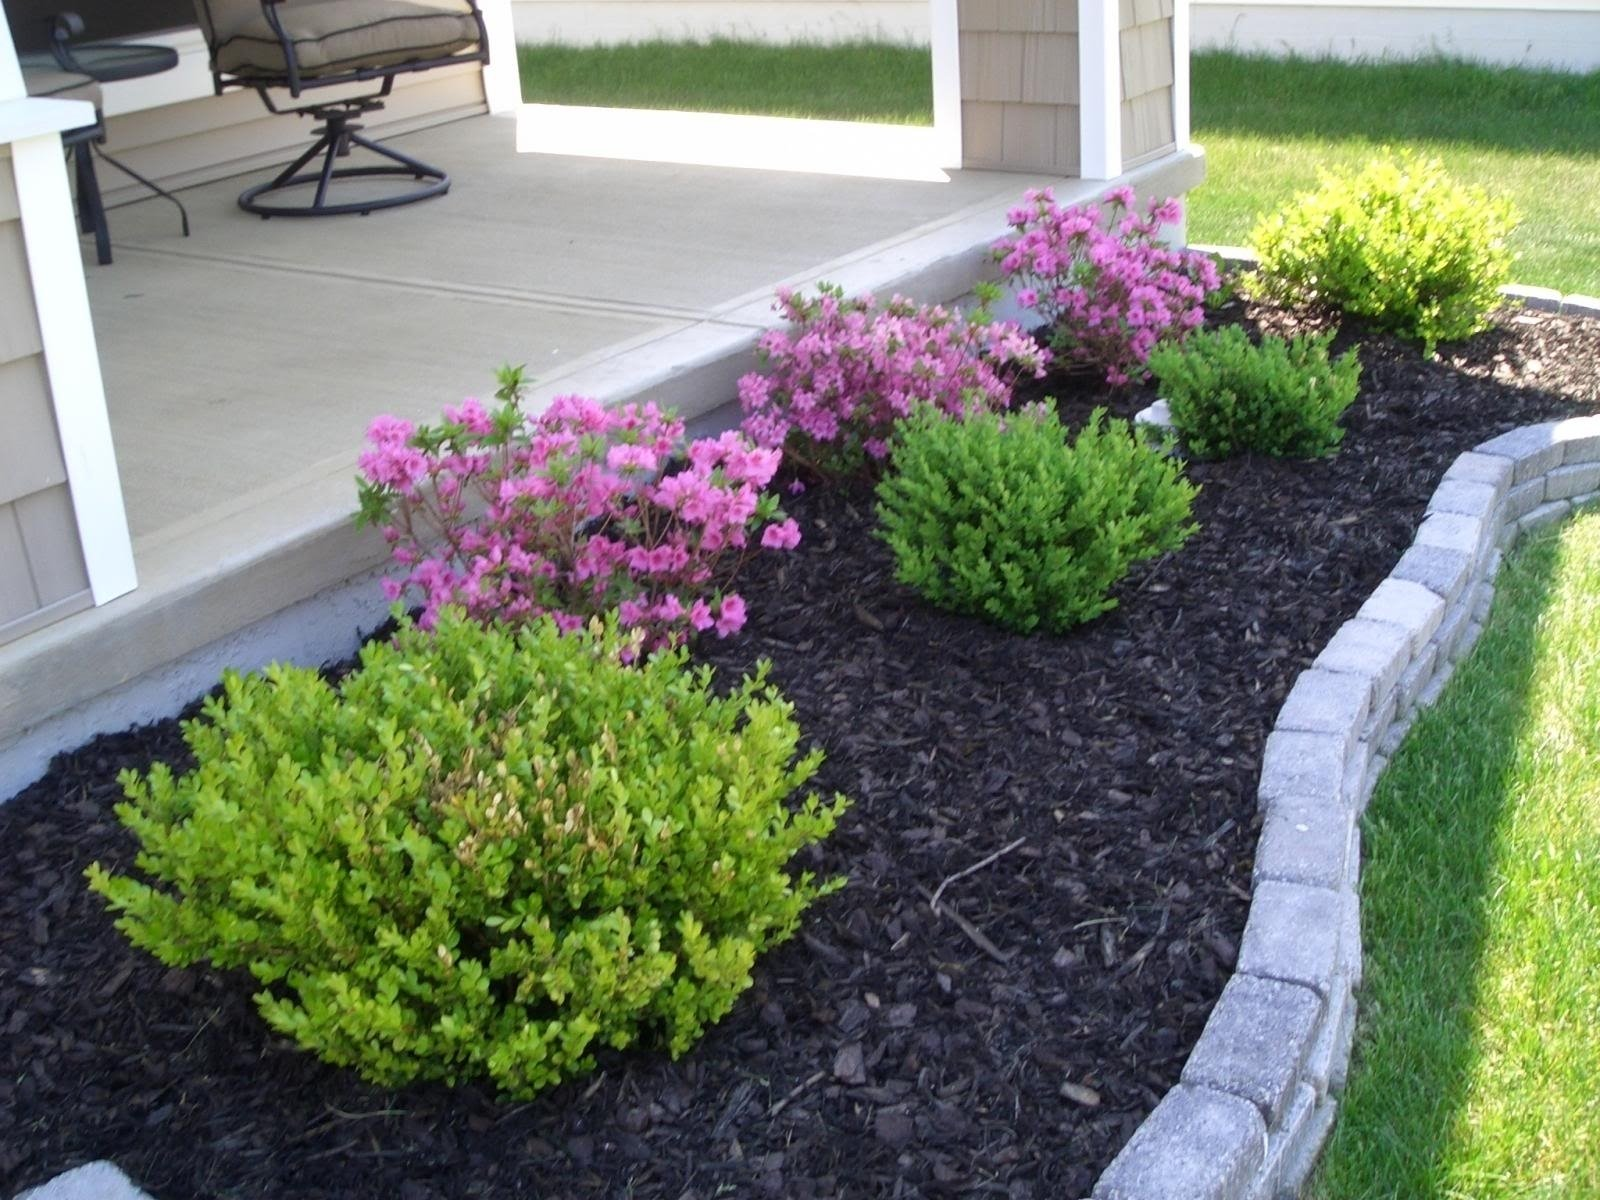 10 Stunning Small Front Yard Landscaping Ideas lovely small front yard landscaping ideas for your home decorating